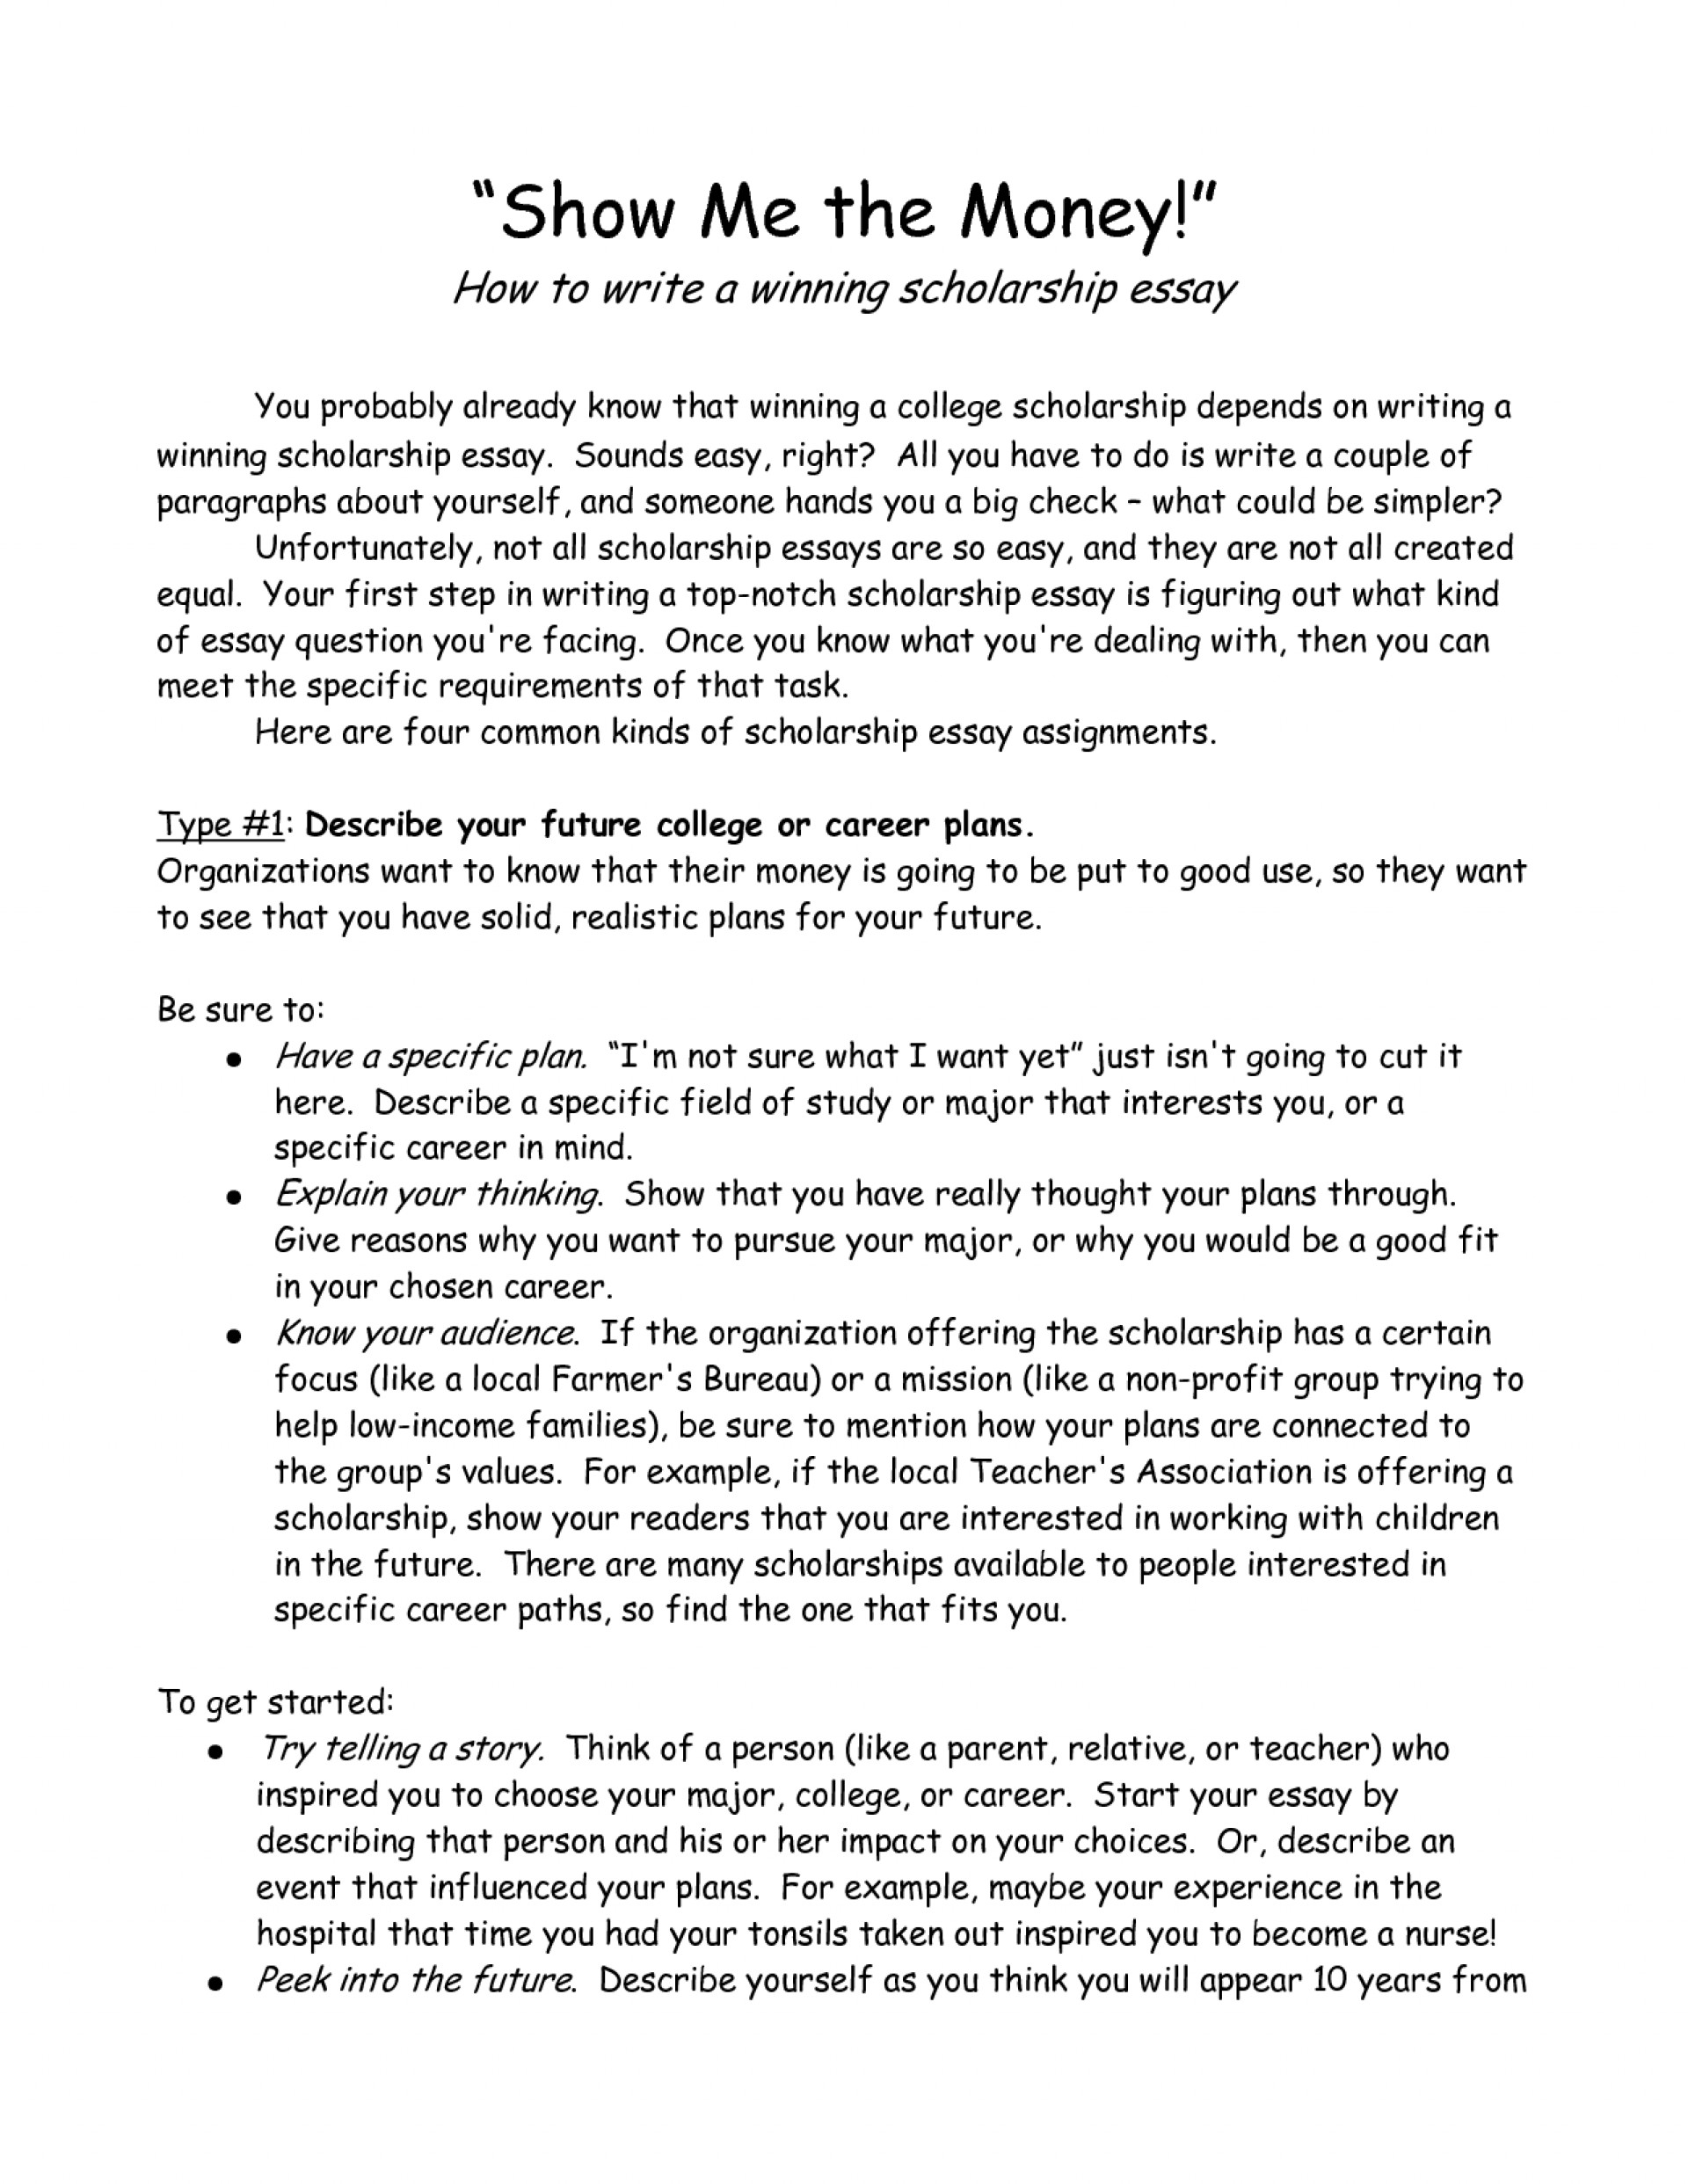 002 Writing Scholarship Essay Excellent A About Yourself Good Your Goals 1920